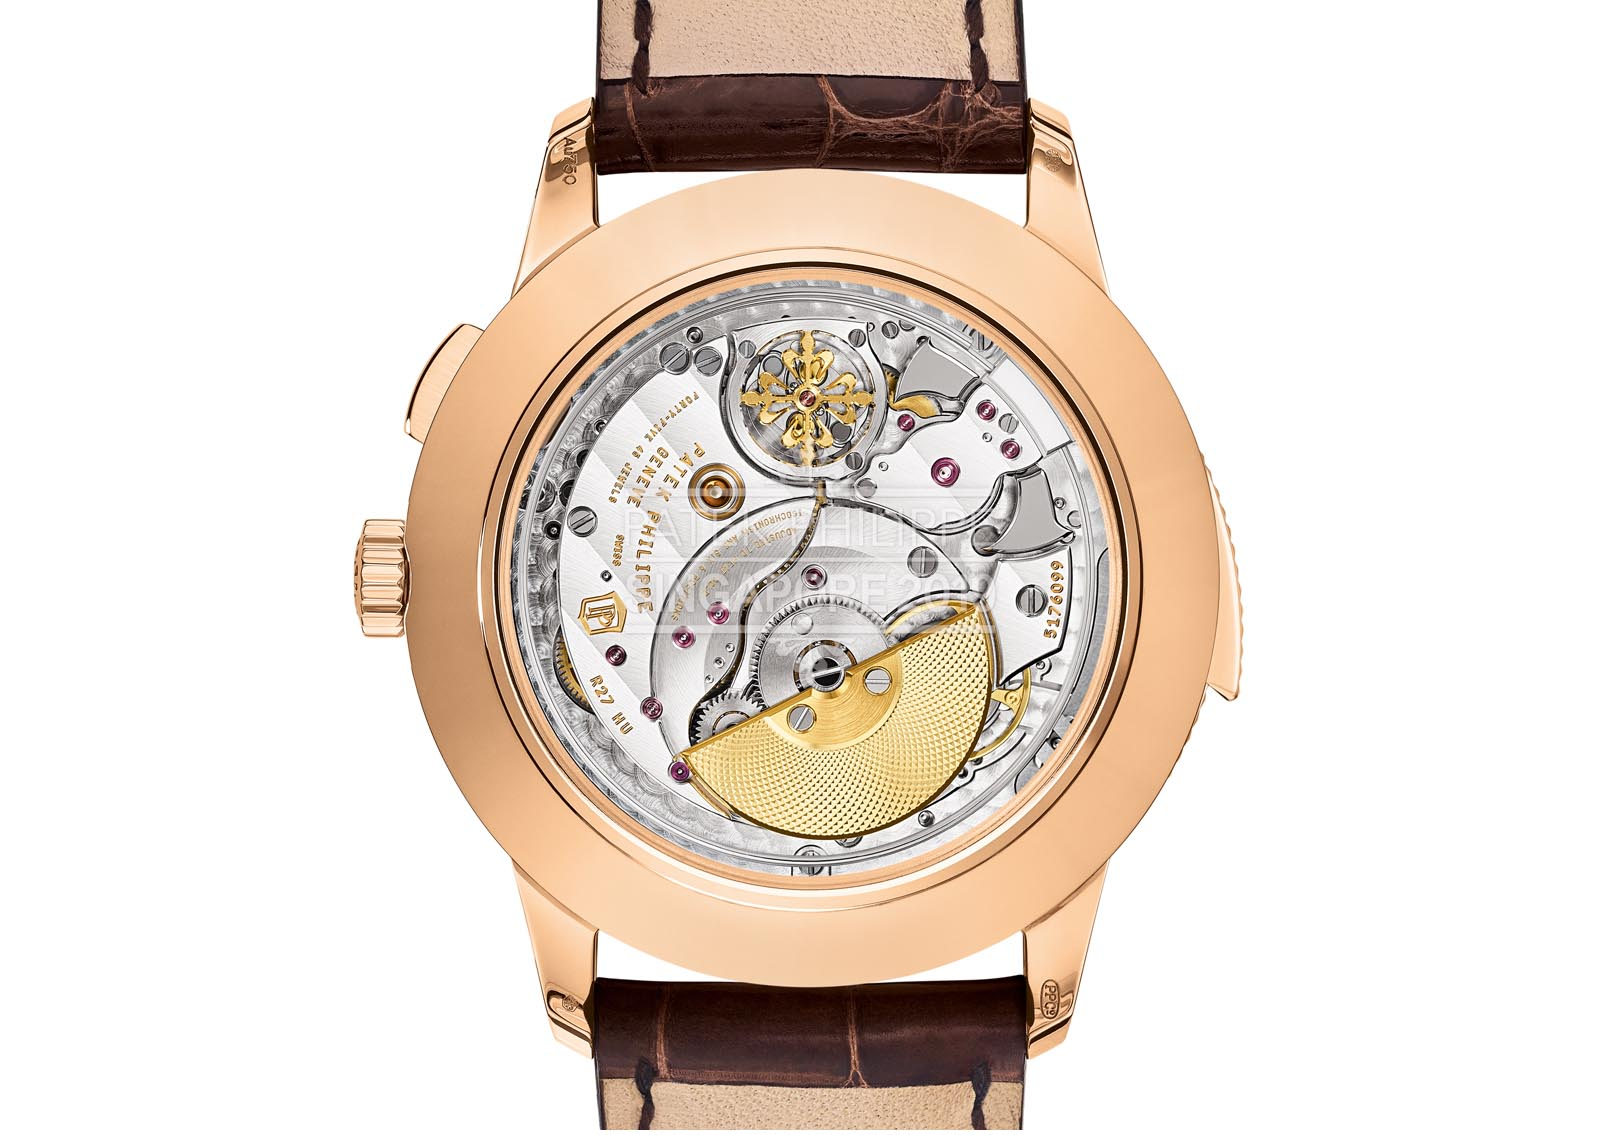 Patek Philippe World Time Minute Repeater Singapore 2019